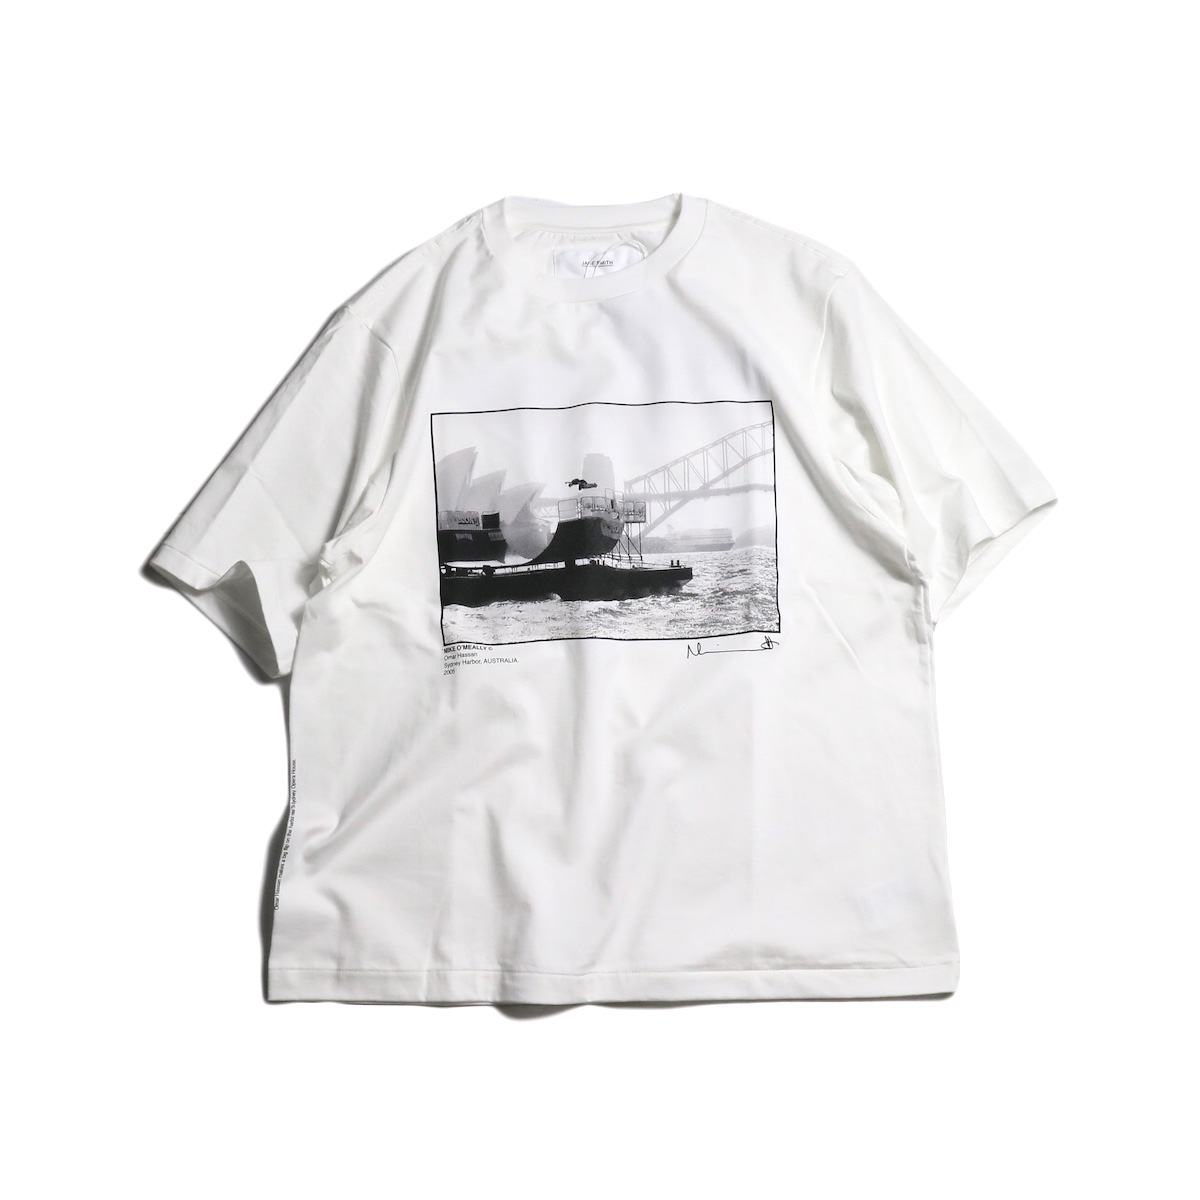 JANE SMITH / OMAR HASSAN SYDNEY HARBOR S/S Tee